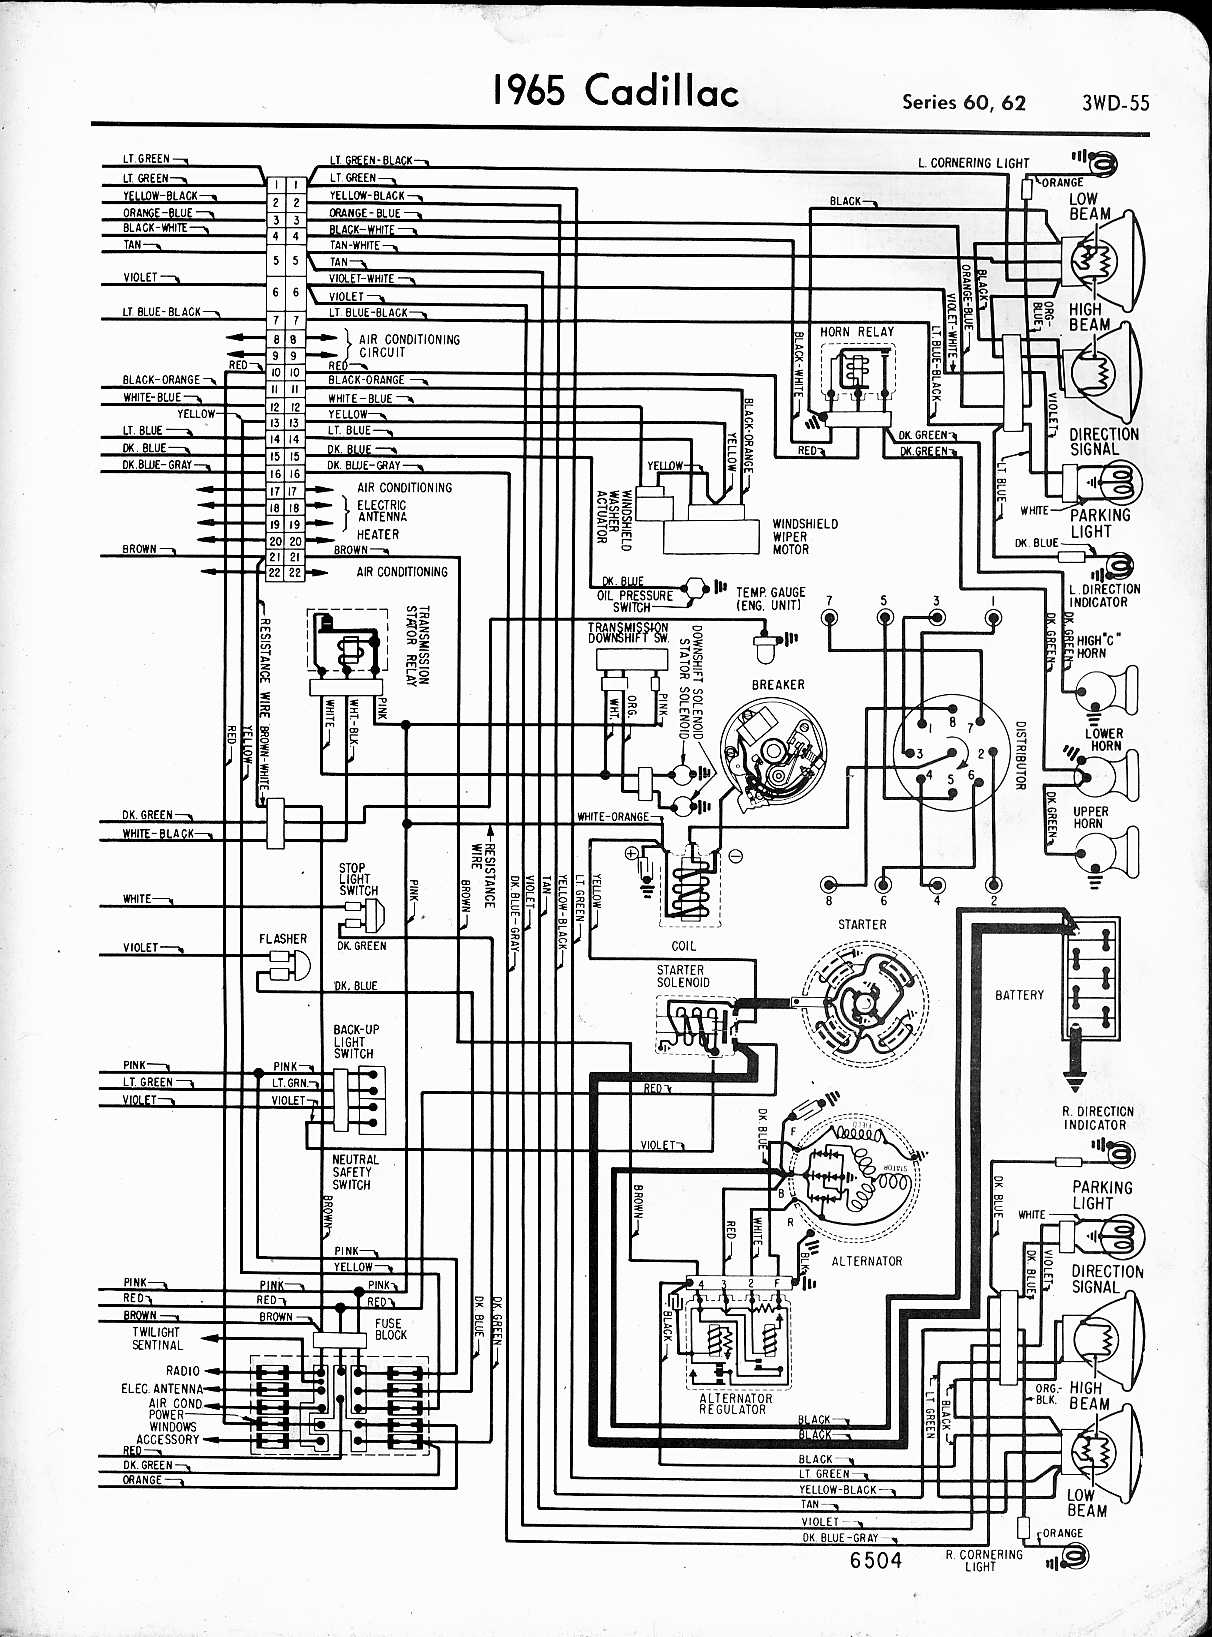 [SCHEMATICS_4FR]  Cadillac Ac Wiring Diagram - With Internet Telephone Wiring Diagram for Wiring  Diagram Schematics | Cadillac Wiring Diagram Free Download Schematic |  | segay-020.ecolechassiers.fr